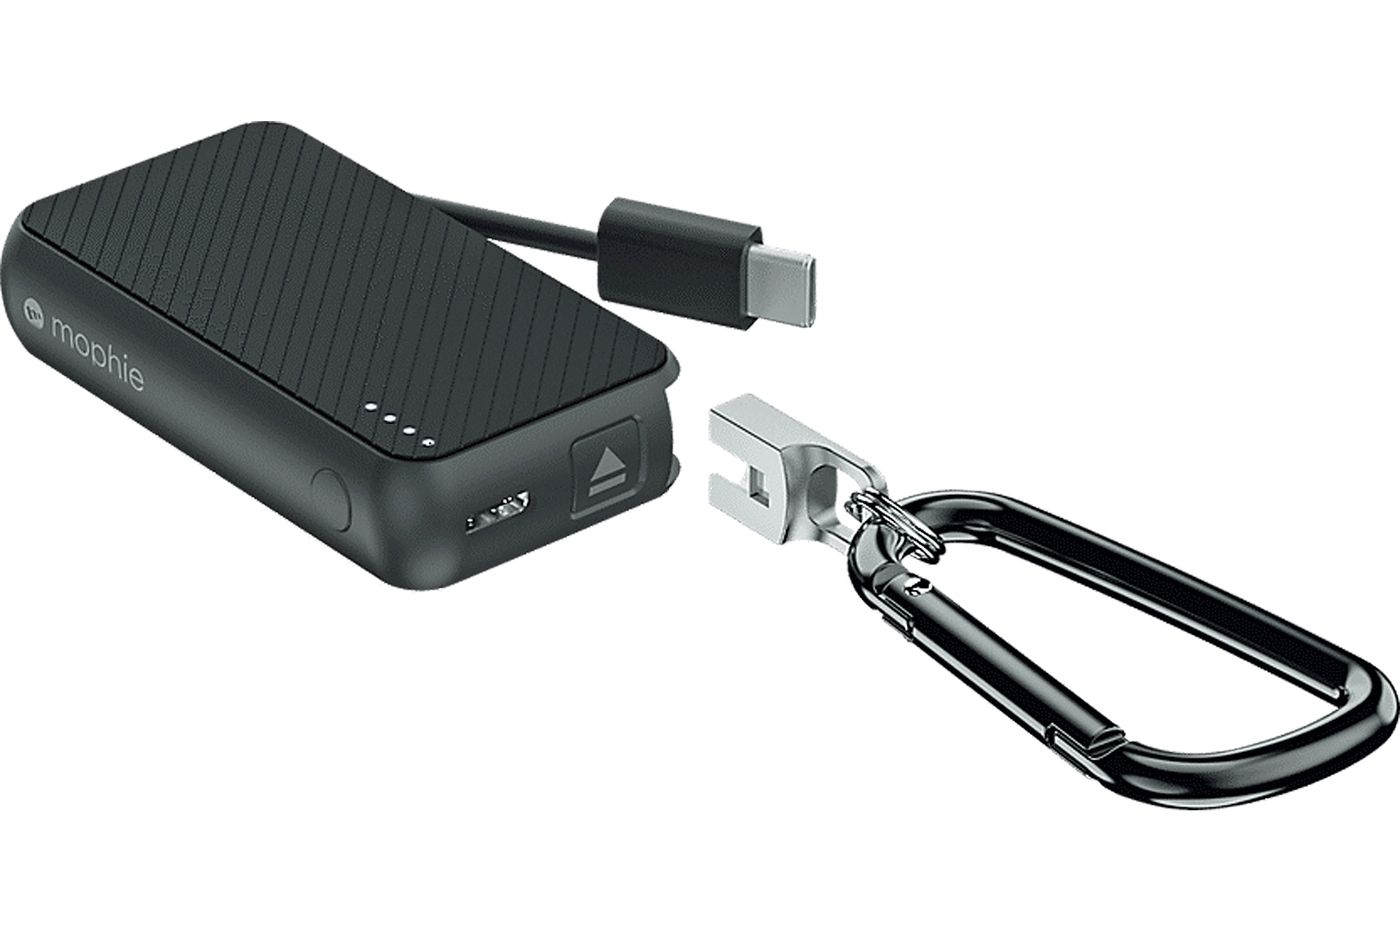 Travel Gear: Mophie Powerstation Keychain portable battery